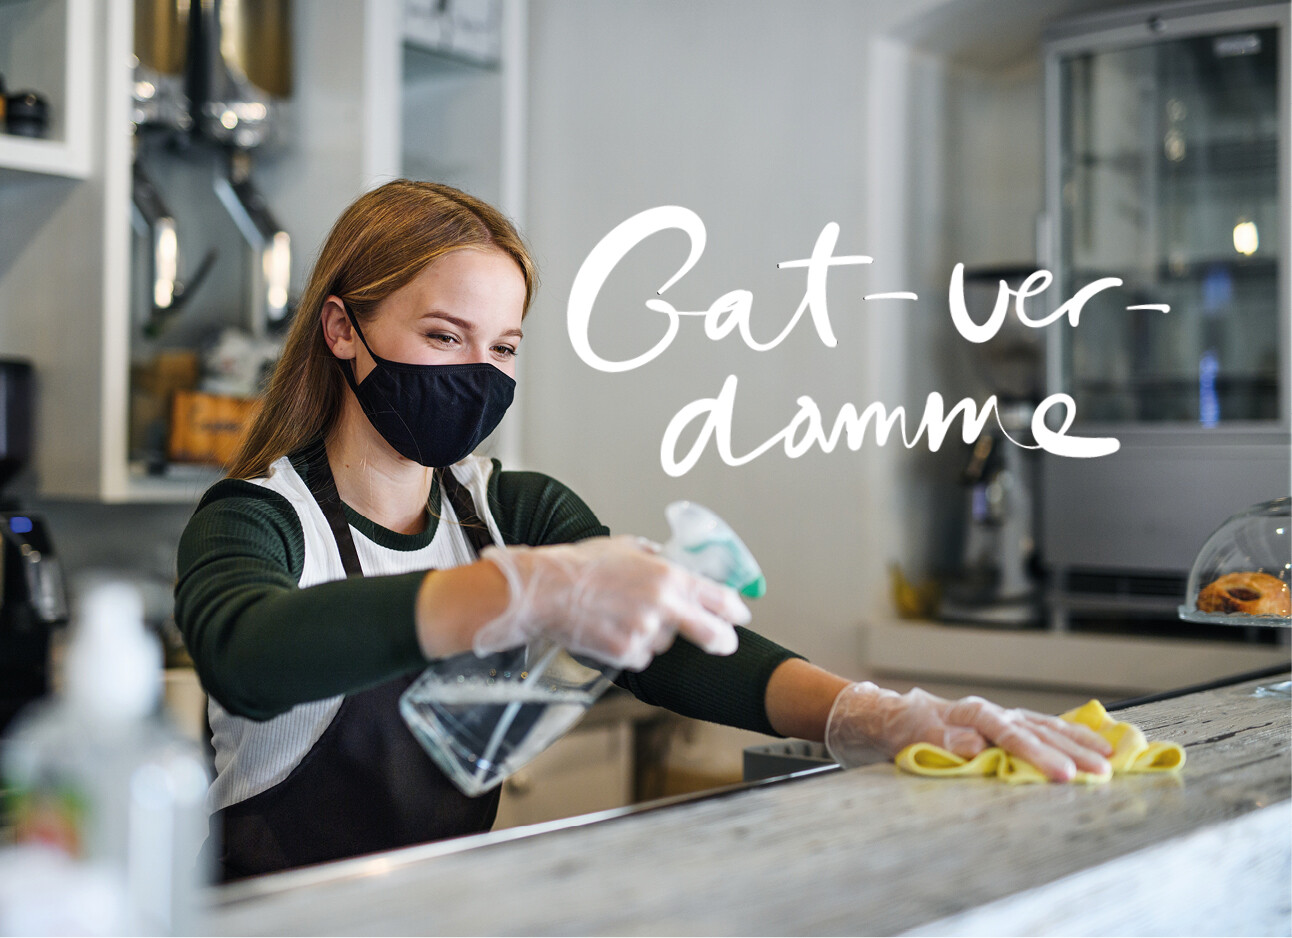 vrouw schoonmaken